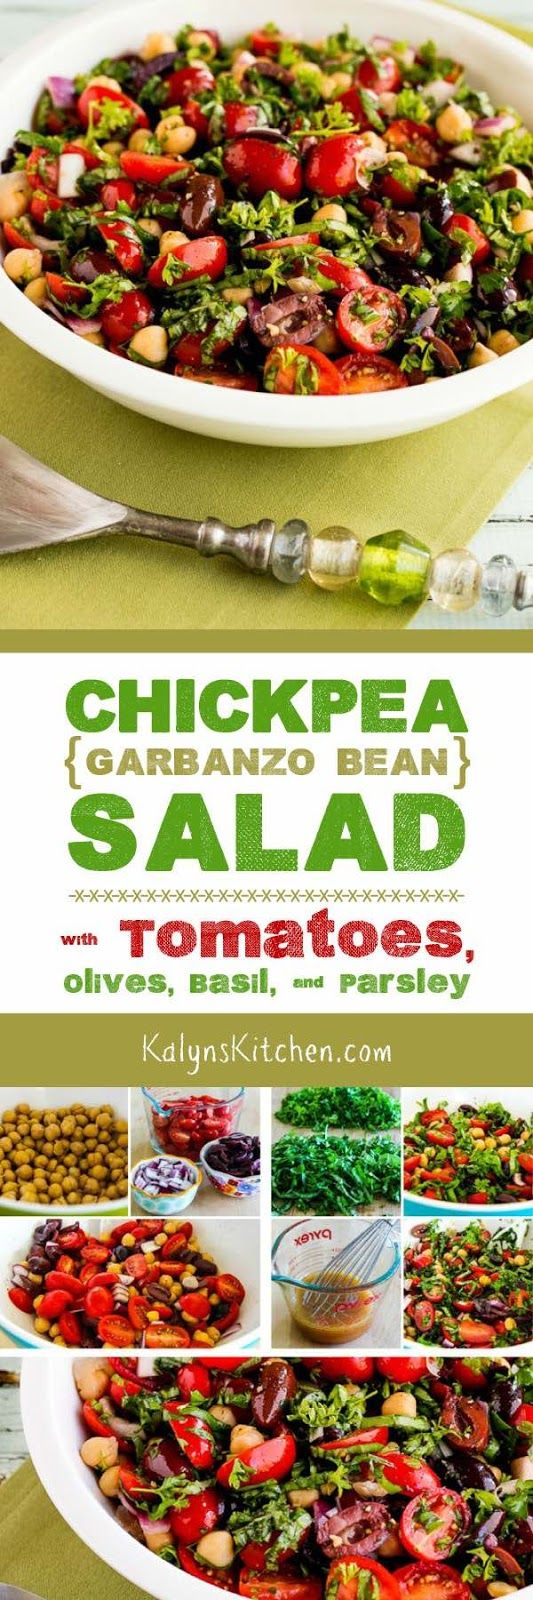 17 Best ideas about Garbanzo Bean Salads on Pinterest ...